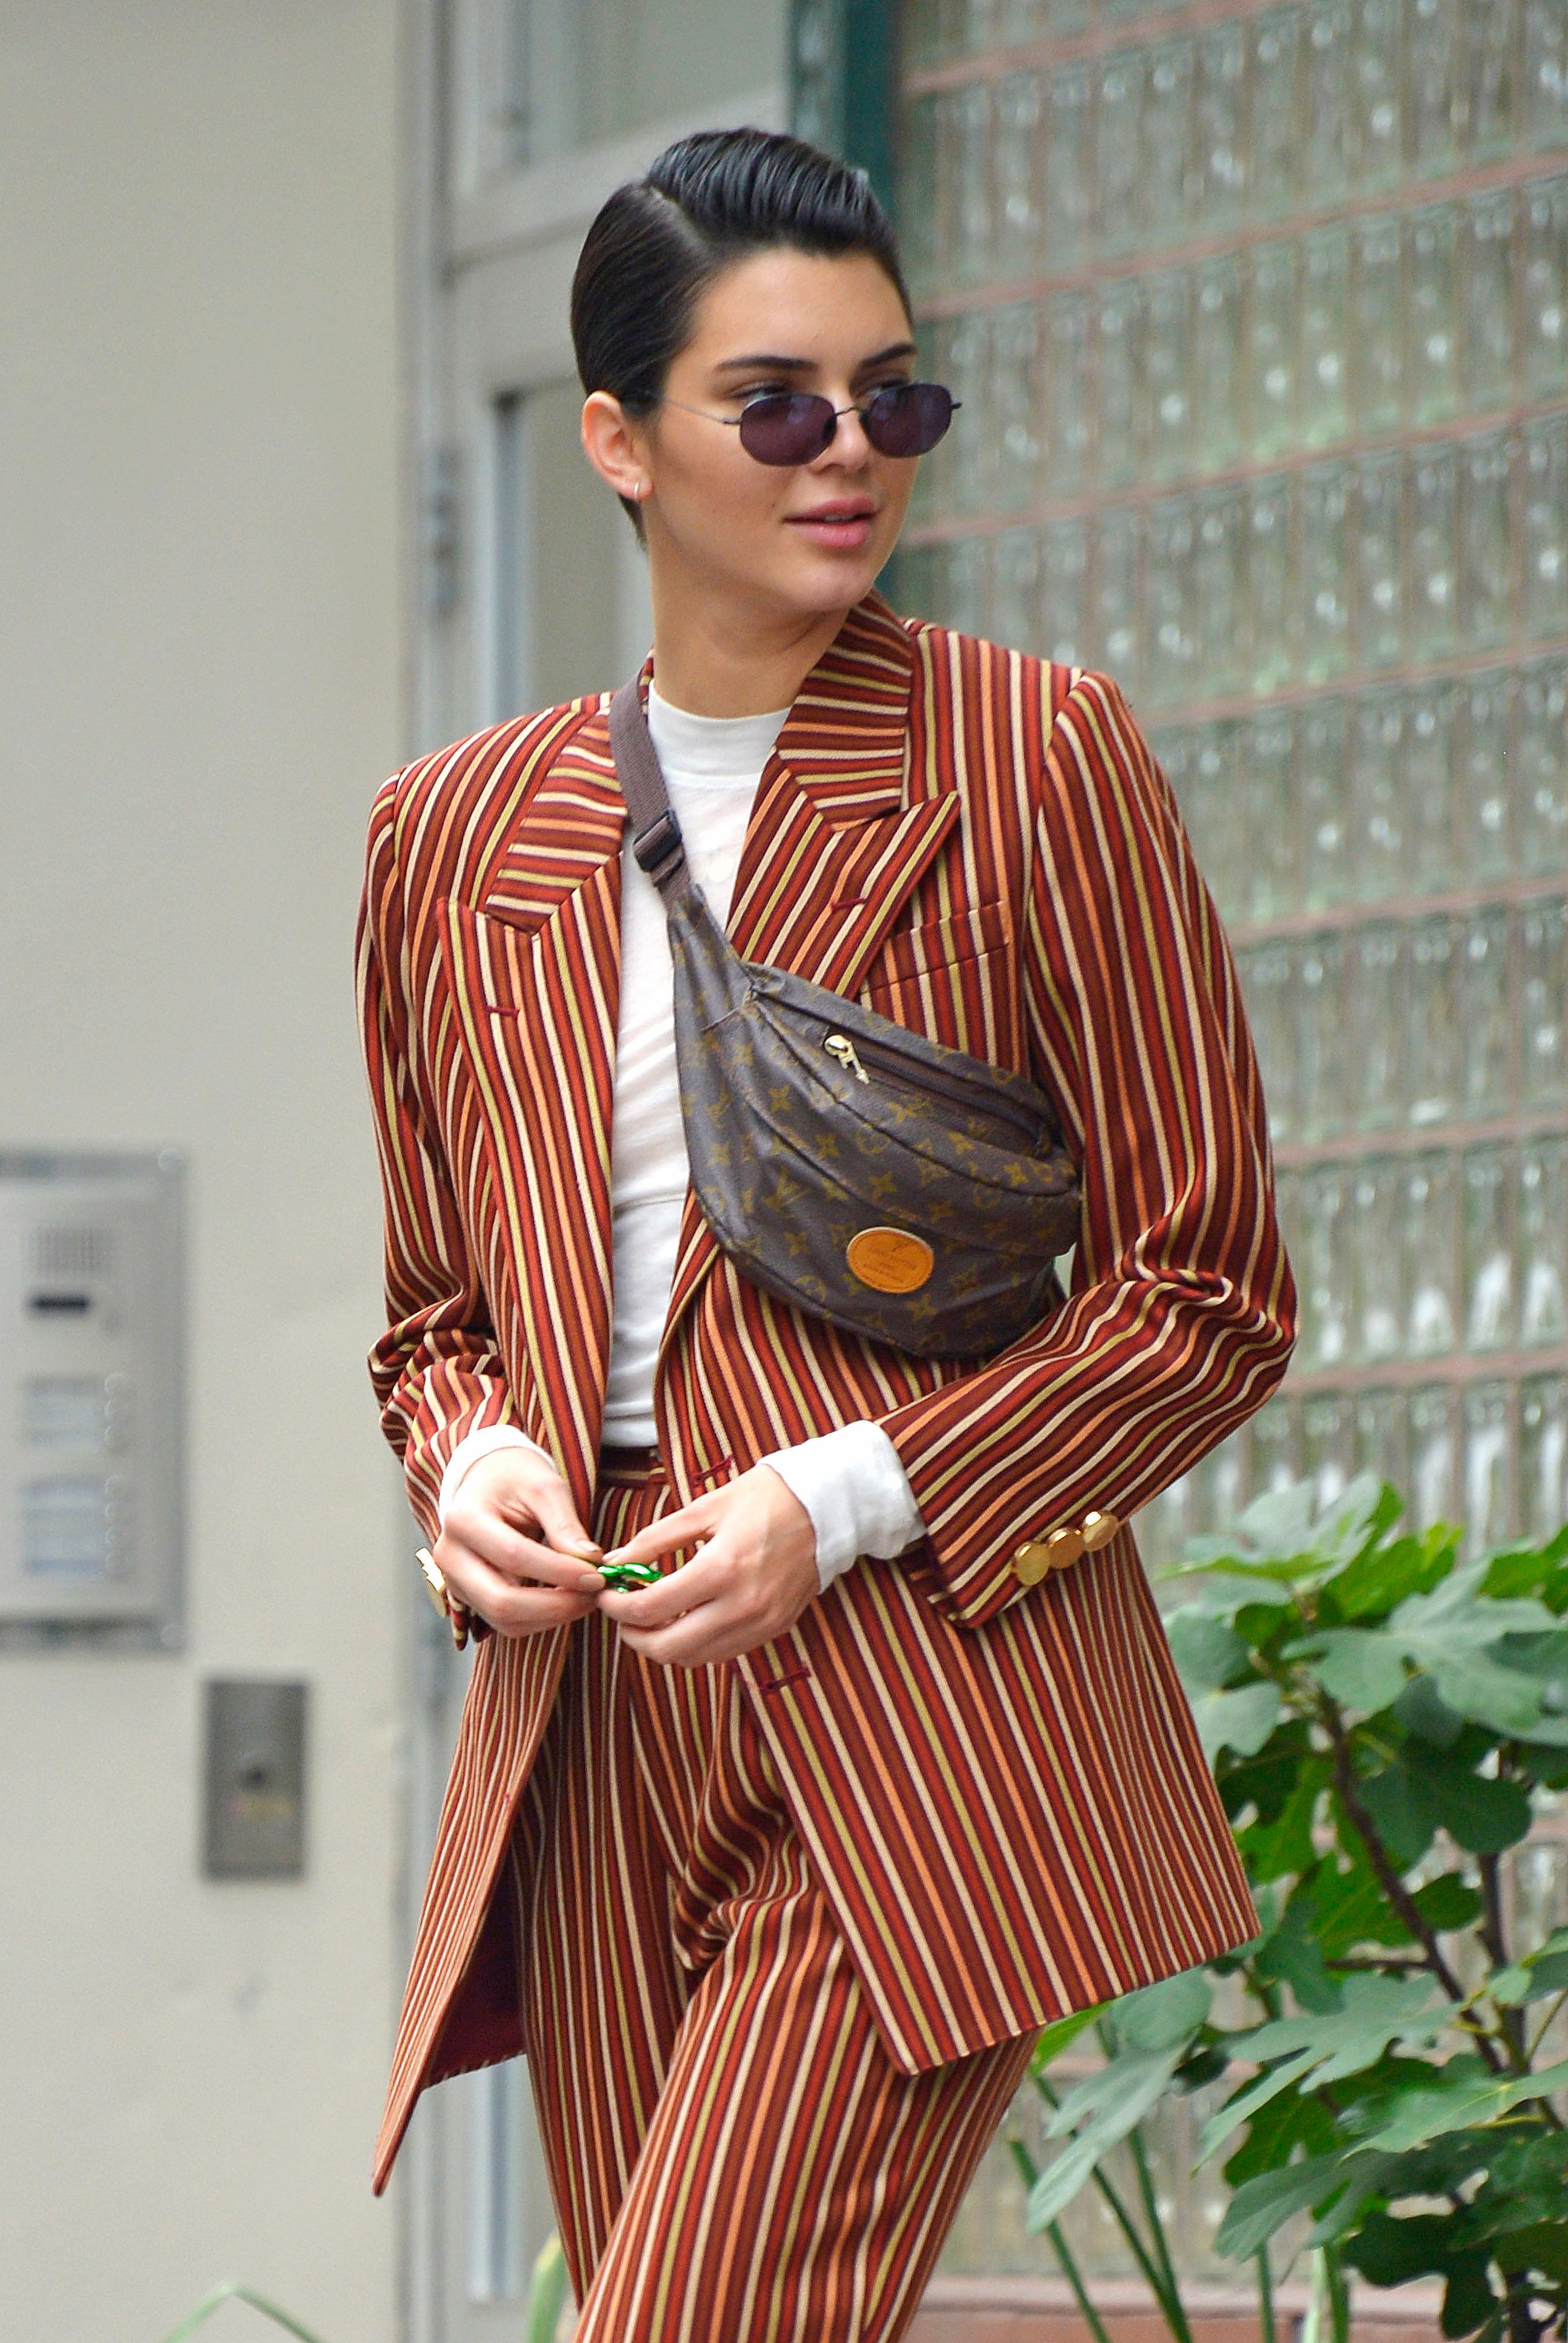 Kendall Jenner wears a modern brown striped suit with white sneakers and her fanny pack while out window shopping at Phillip Lim in NYC.